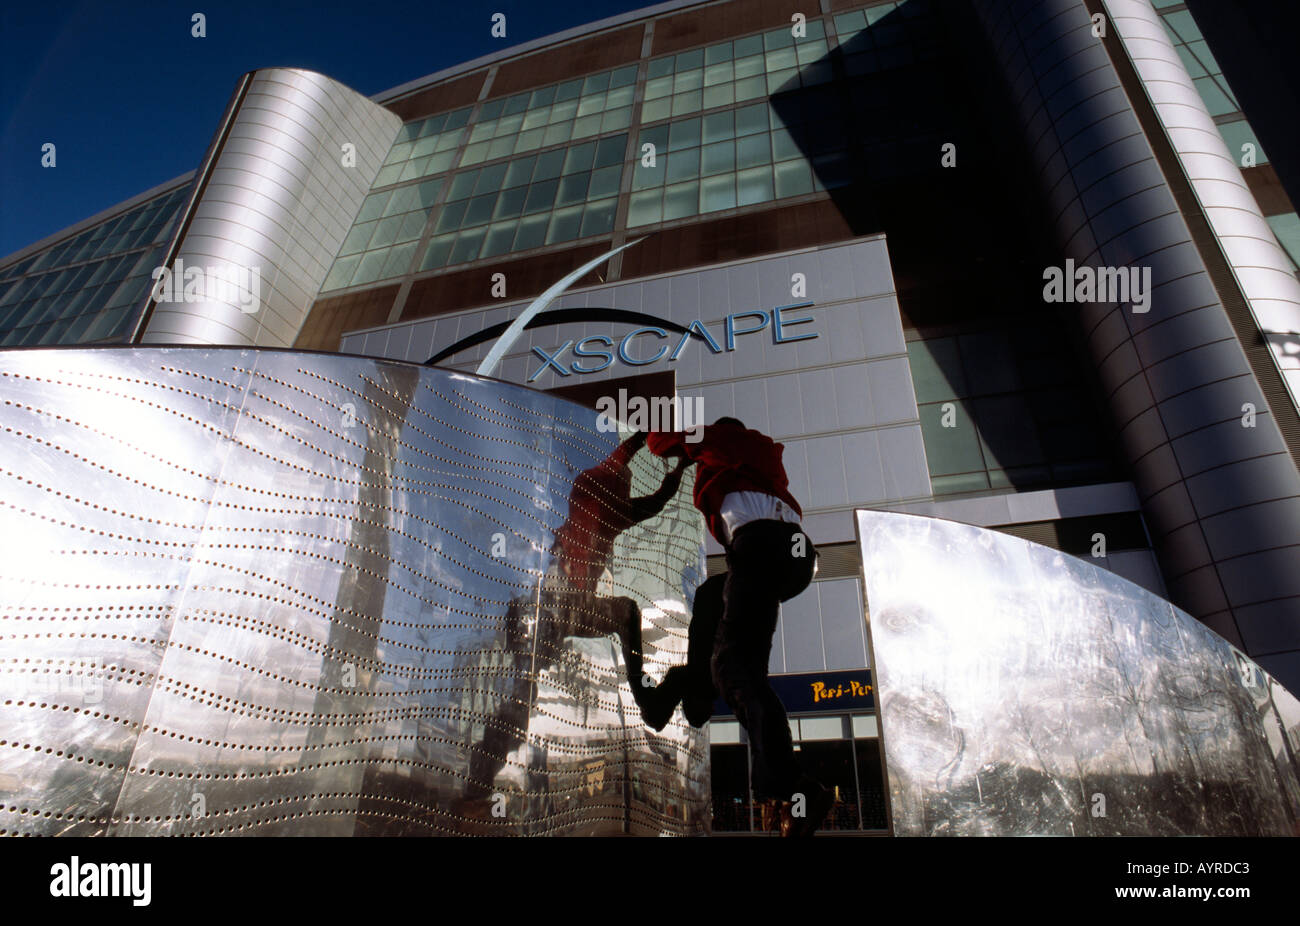 PICTURE CREDIT DOUG BLANE Doug Blane practicing Le Parkour climbing freerunning outside the Xscape snow dome Central Stock Photo